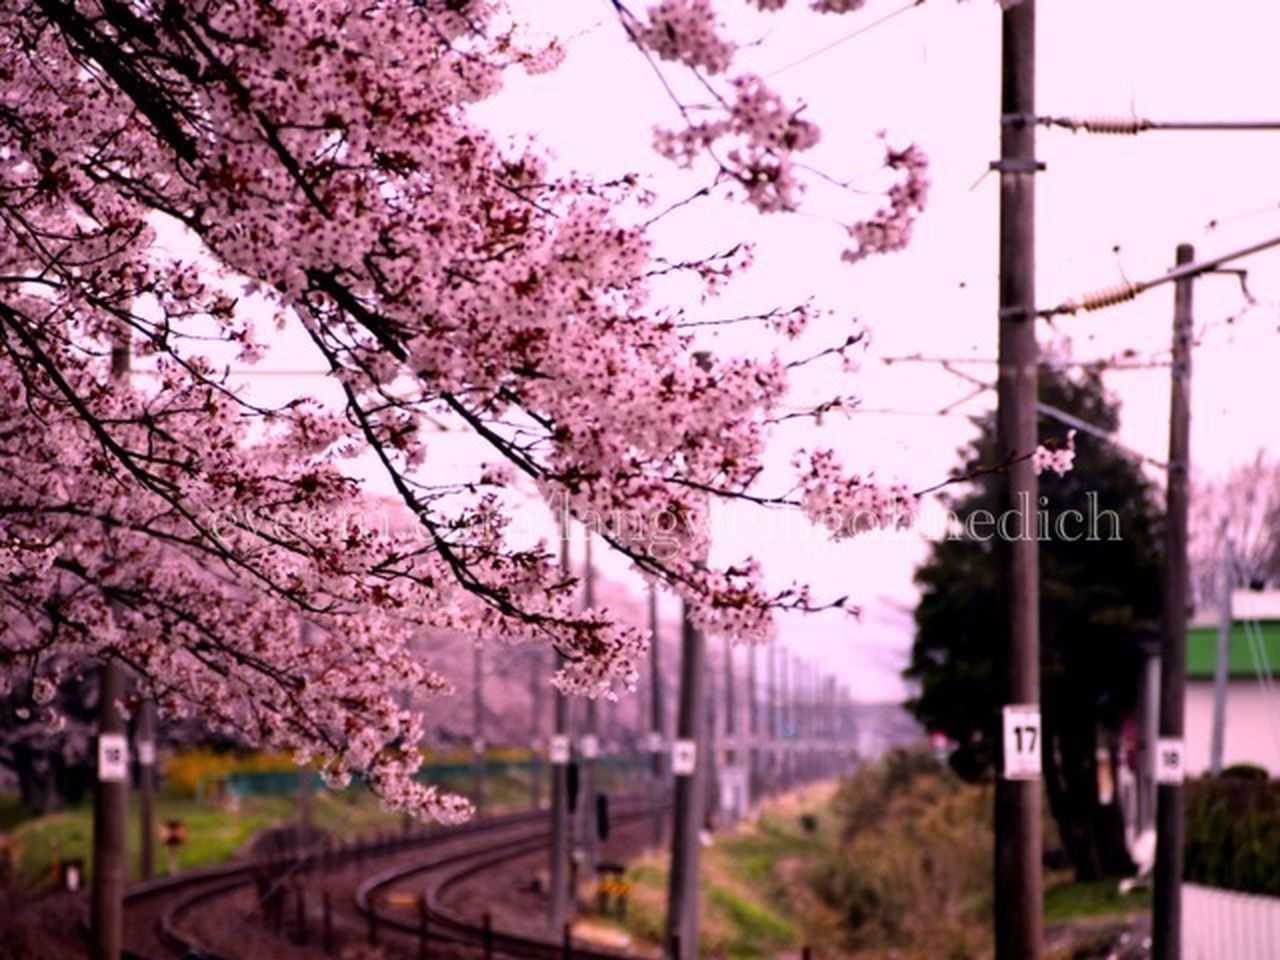 tree, cherry blossom, blossom, flower, pink color, cherry tree, springtime, nature, no people, branch, beauty in nature, outdoors, fragility, growth, plum blossom, sky, day, freshness, road, close-up